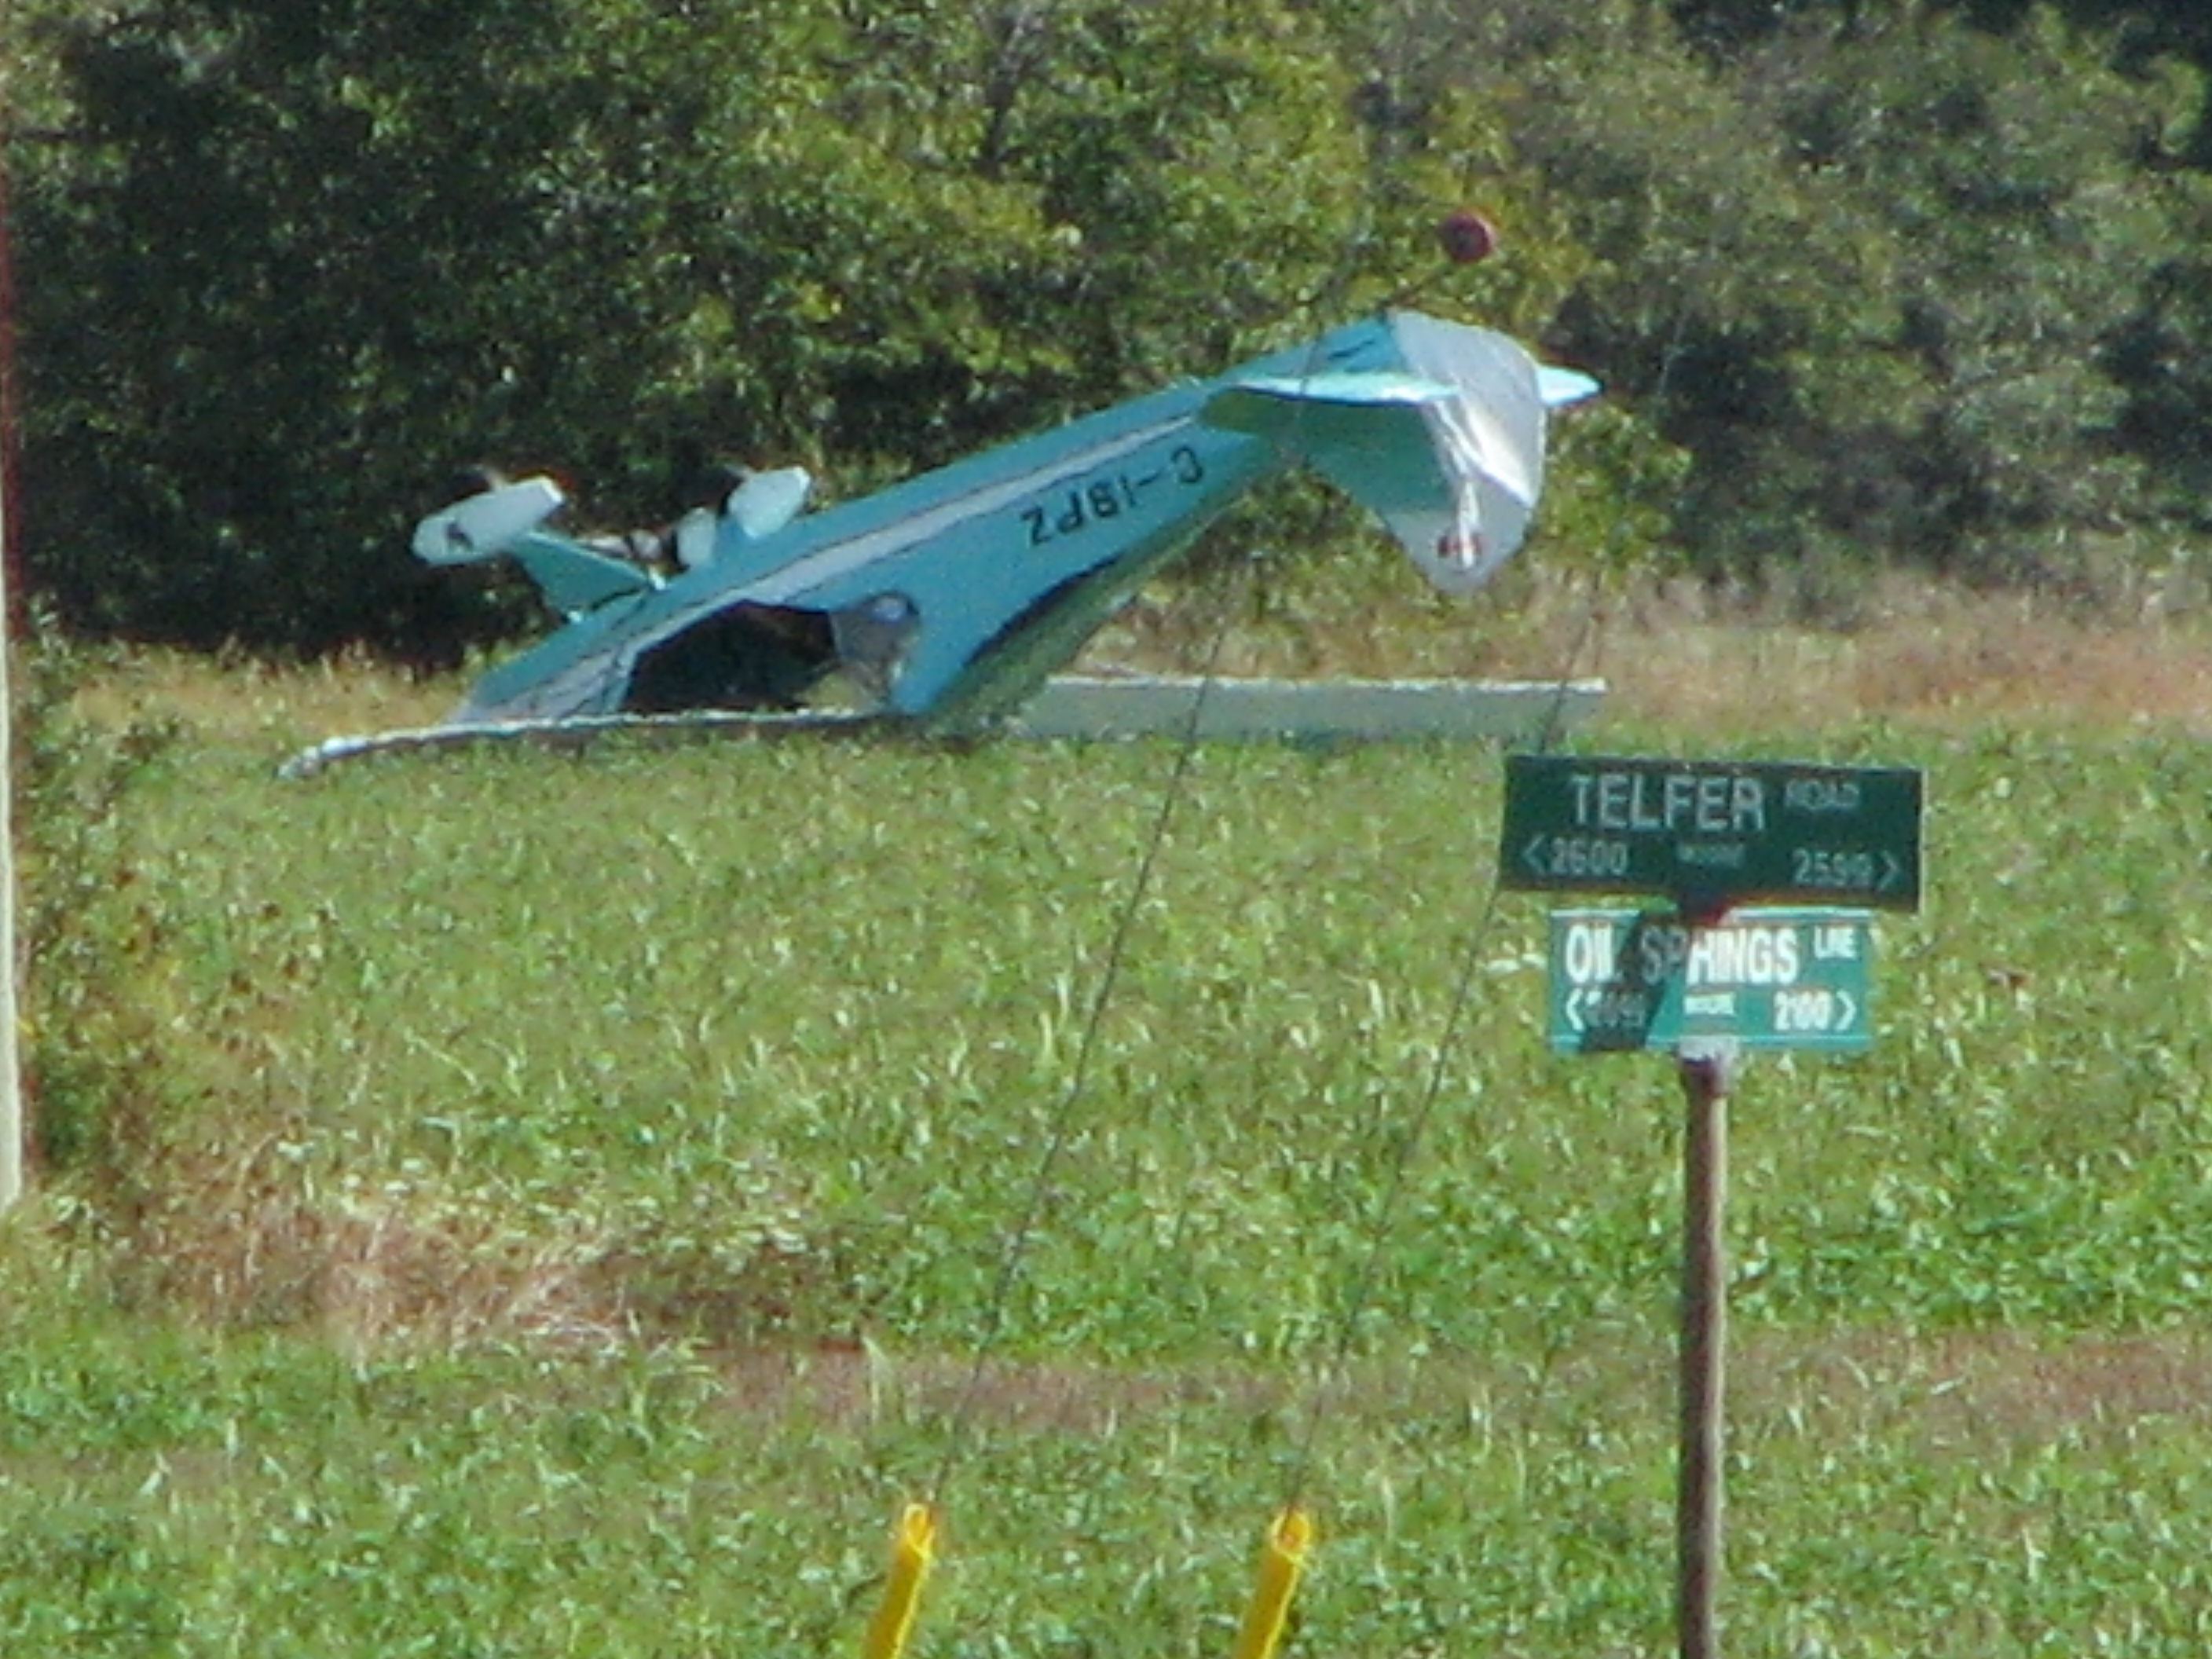 A plane crashes in a field at Telfer Rd. and Oil Springs Line Sun Sept 14, 2014 (photo courtesy of Larry Trepanier)